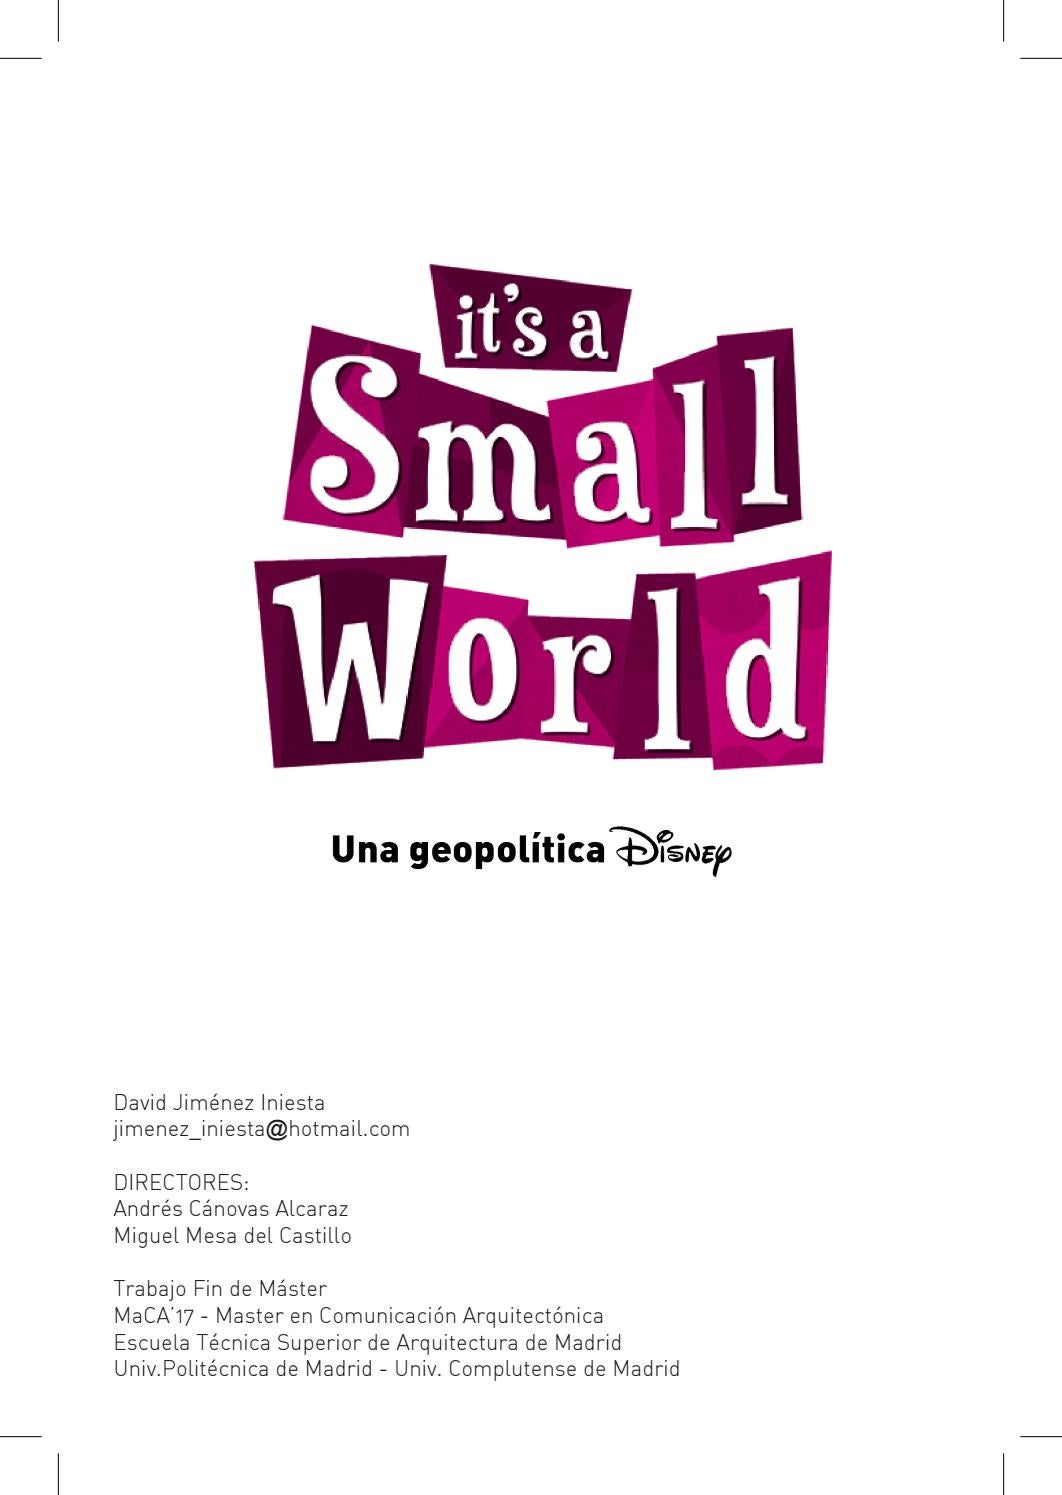 Muebles Martinez Iniesta It S A Small World Geopolitica Disney David Jiménez Iniesta